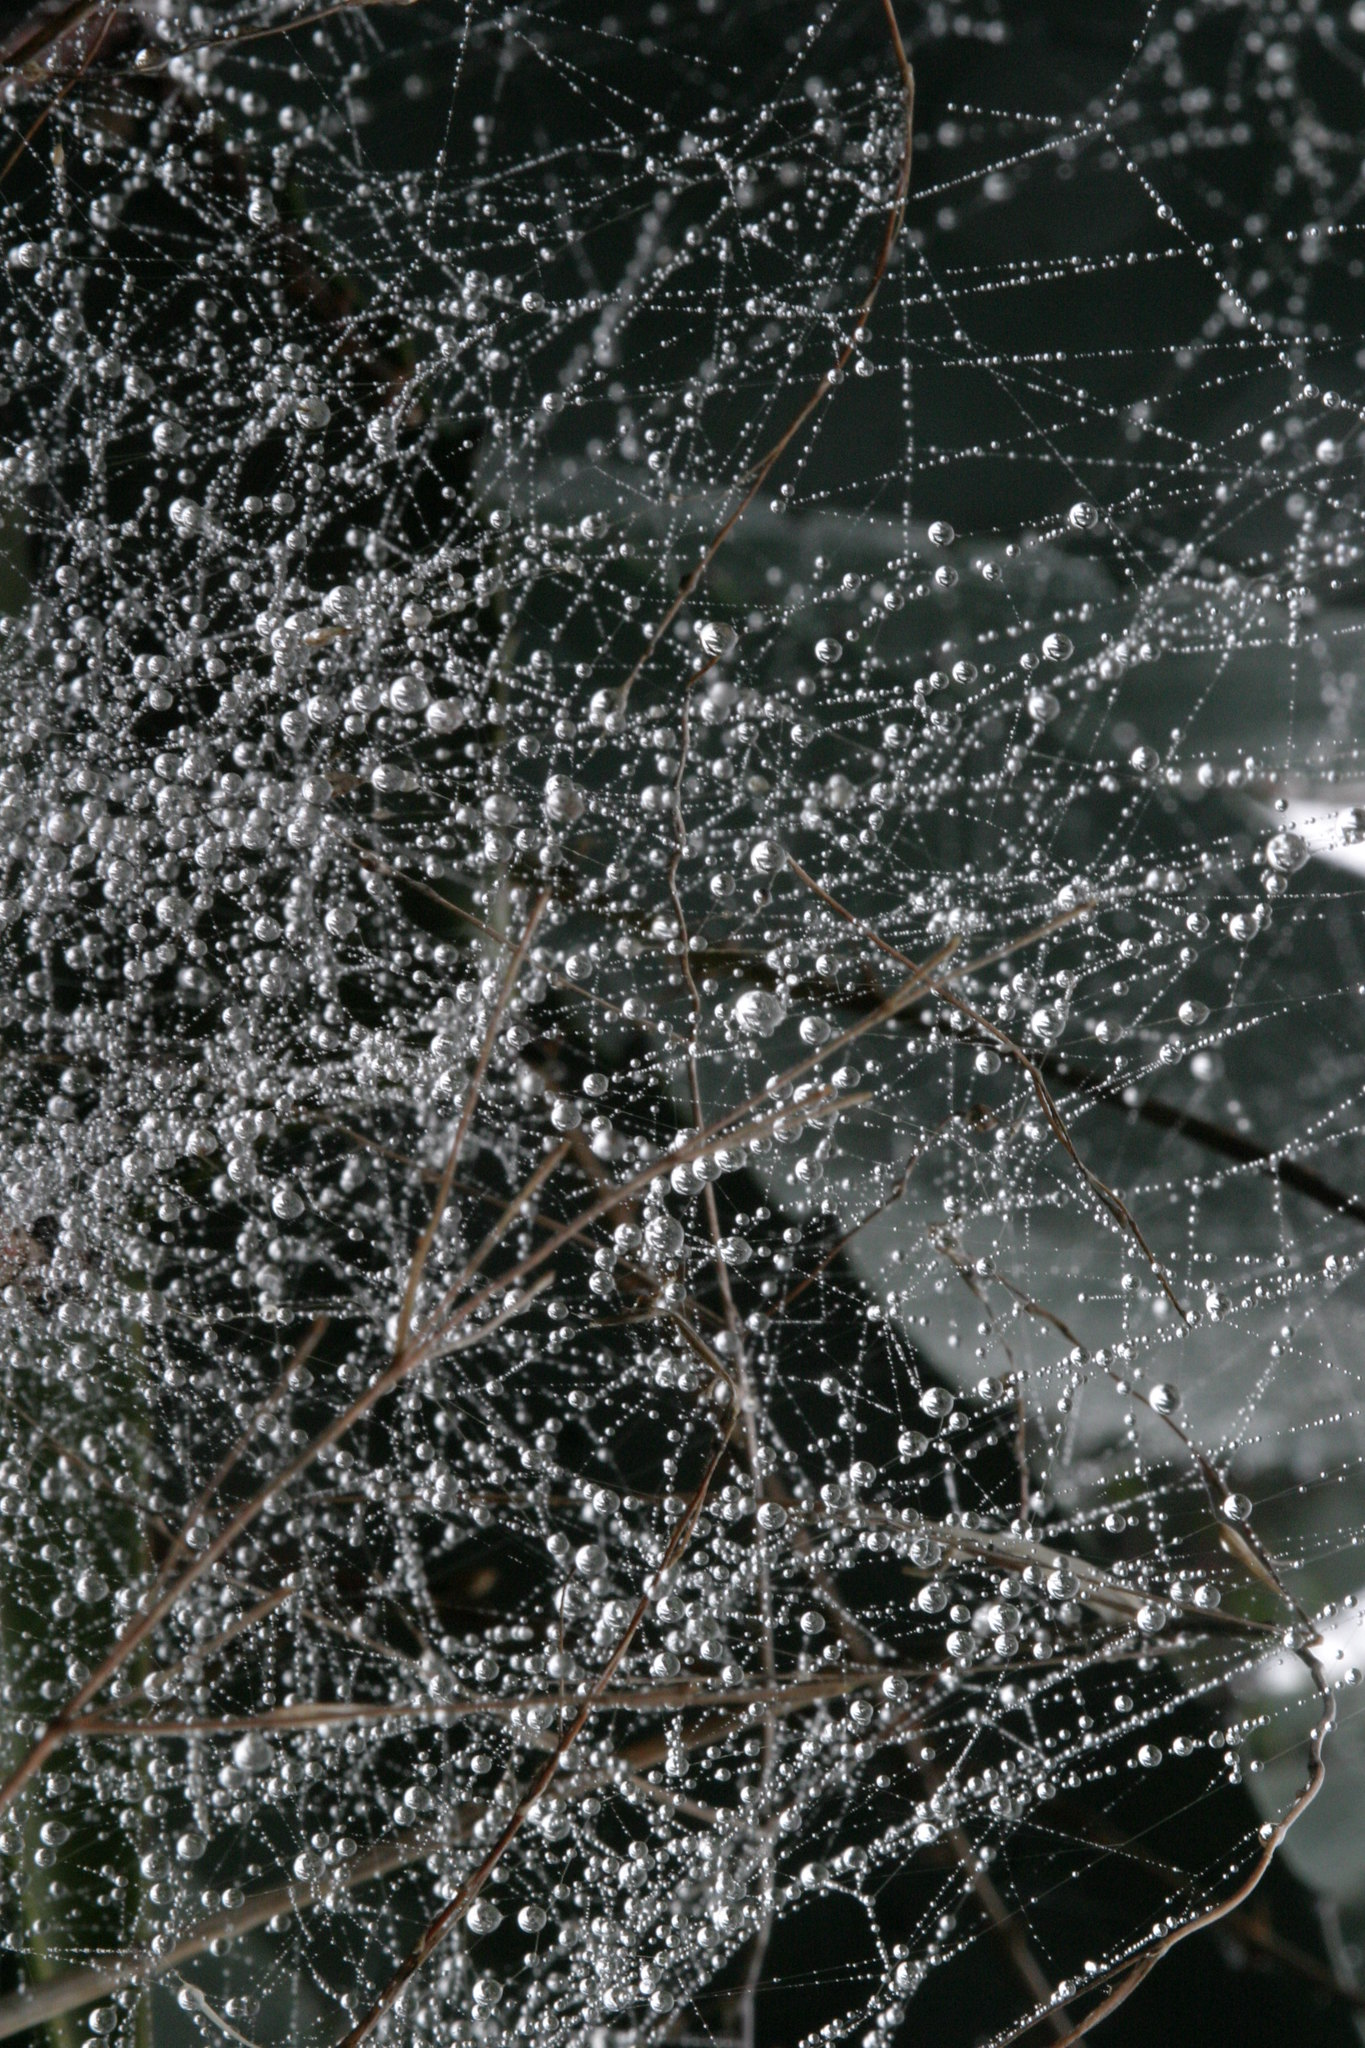 water droplets in spider web